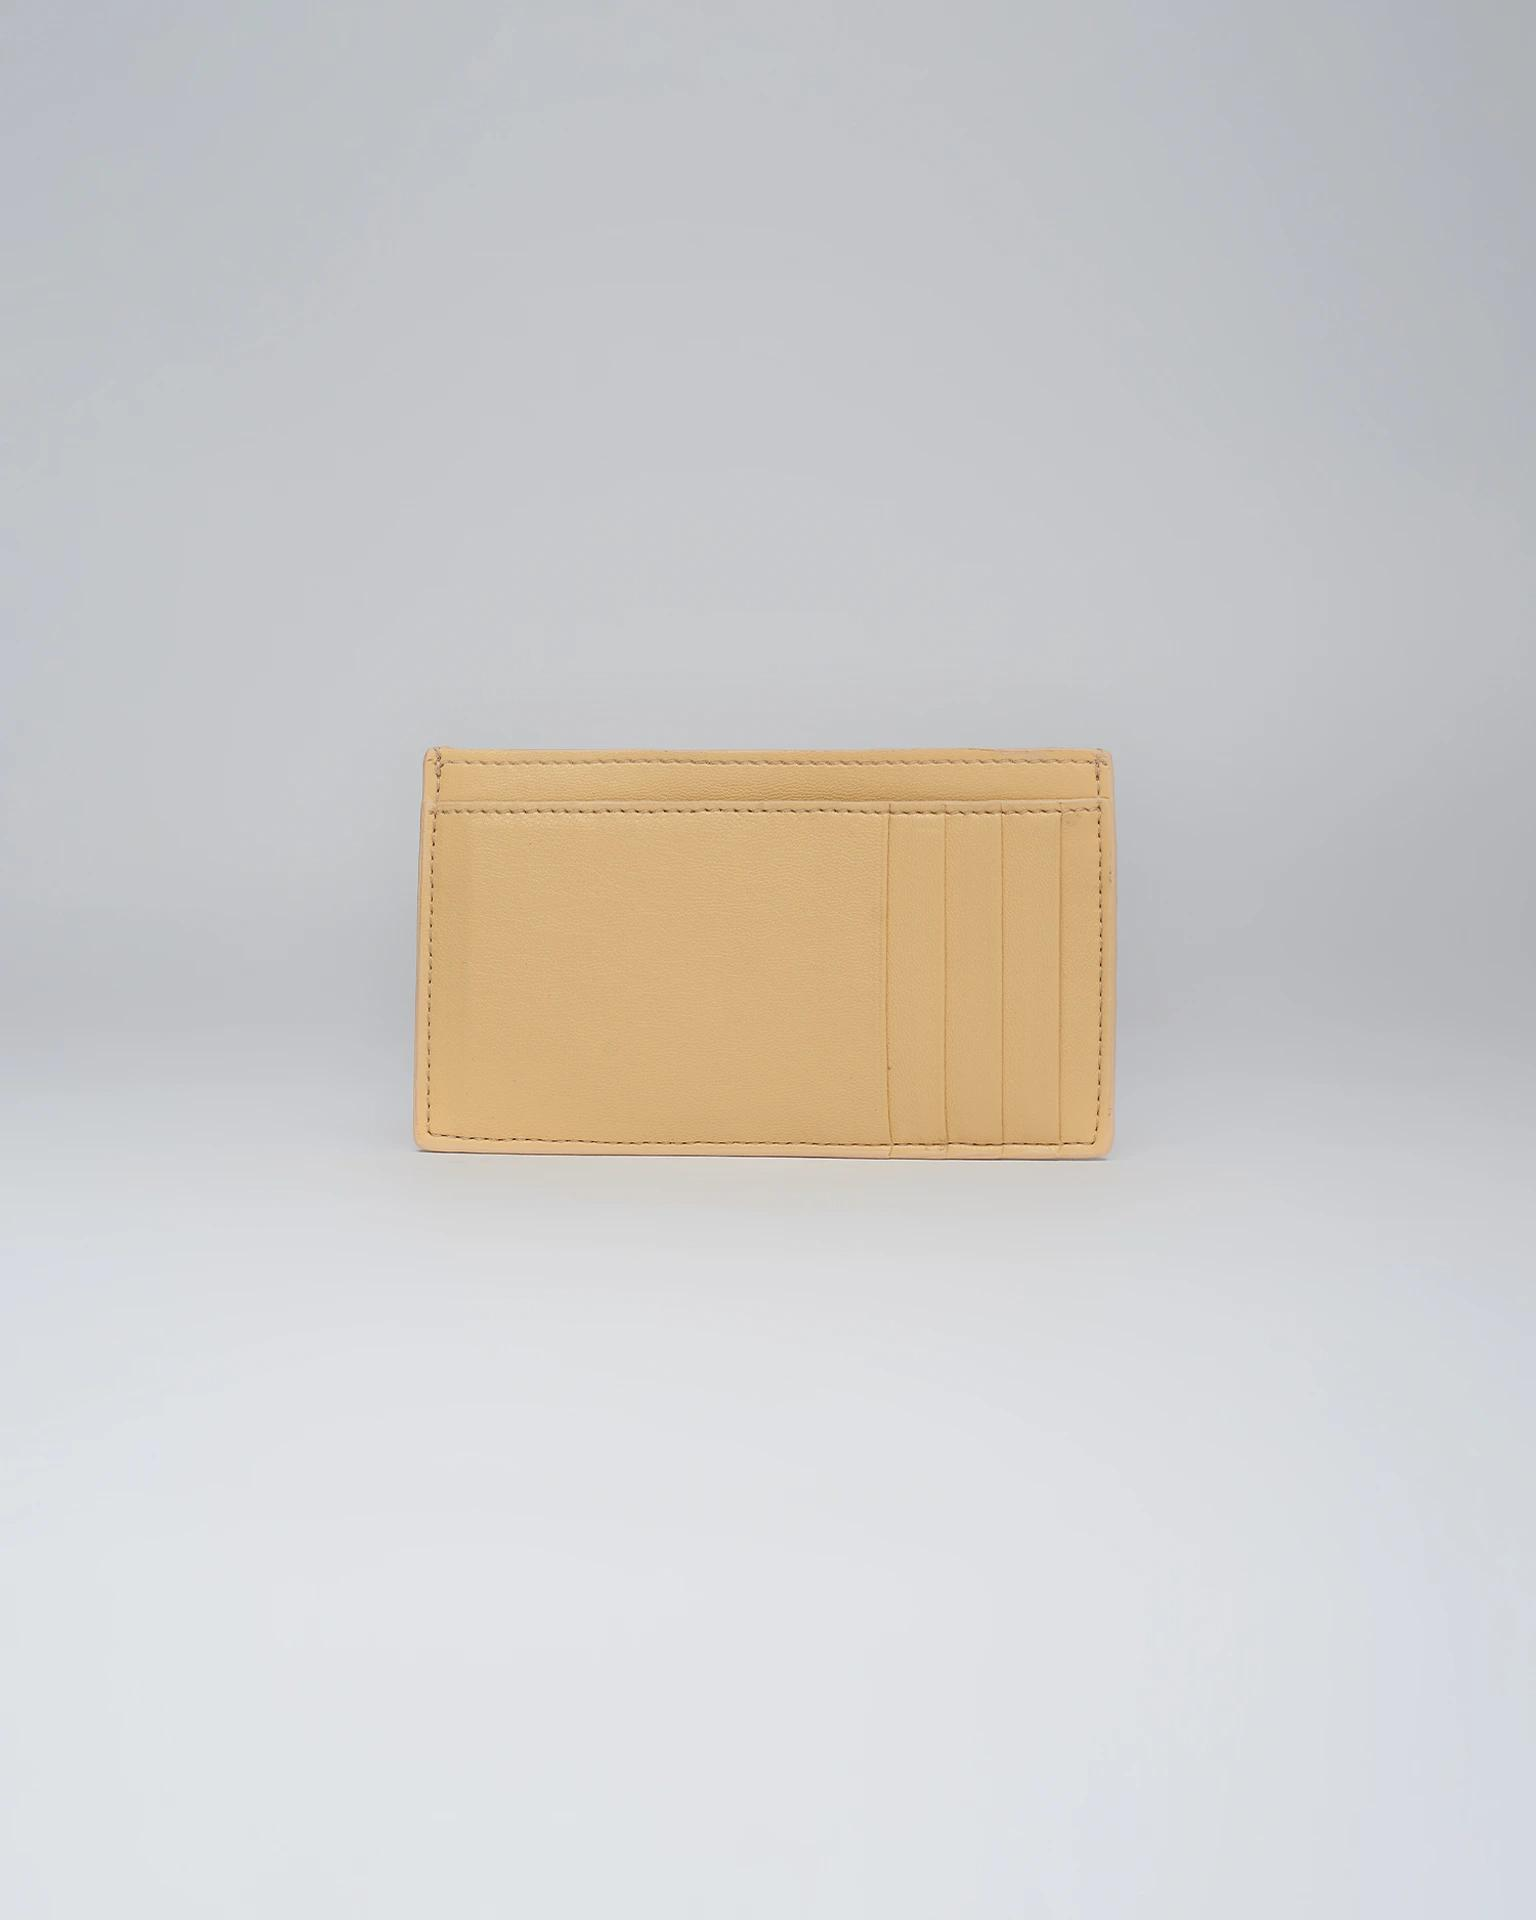 ARAXIE - Leather wallet - Sable 1